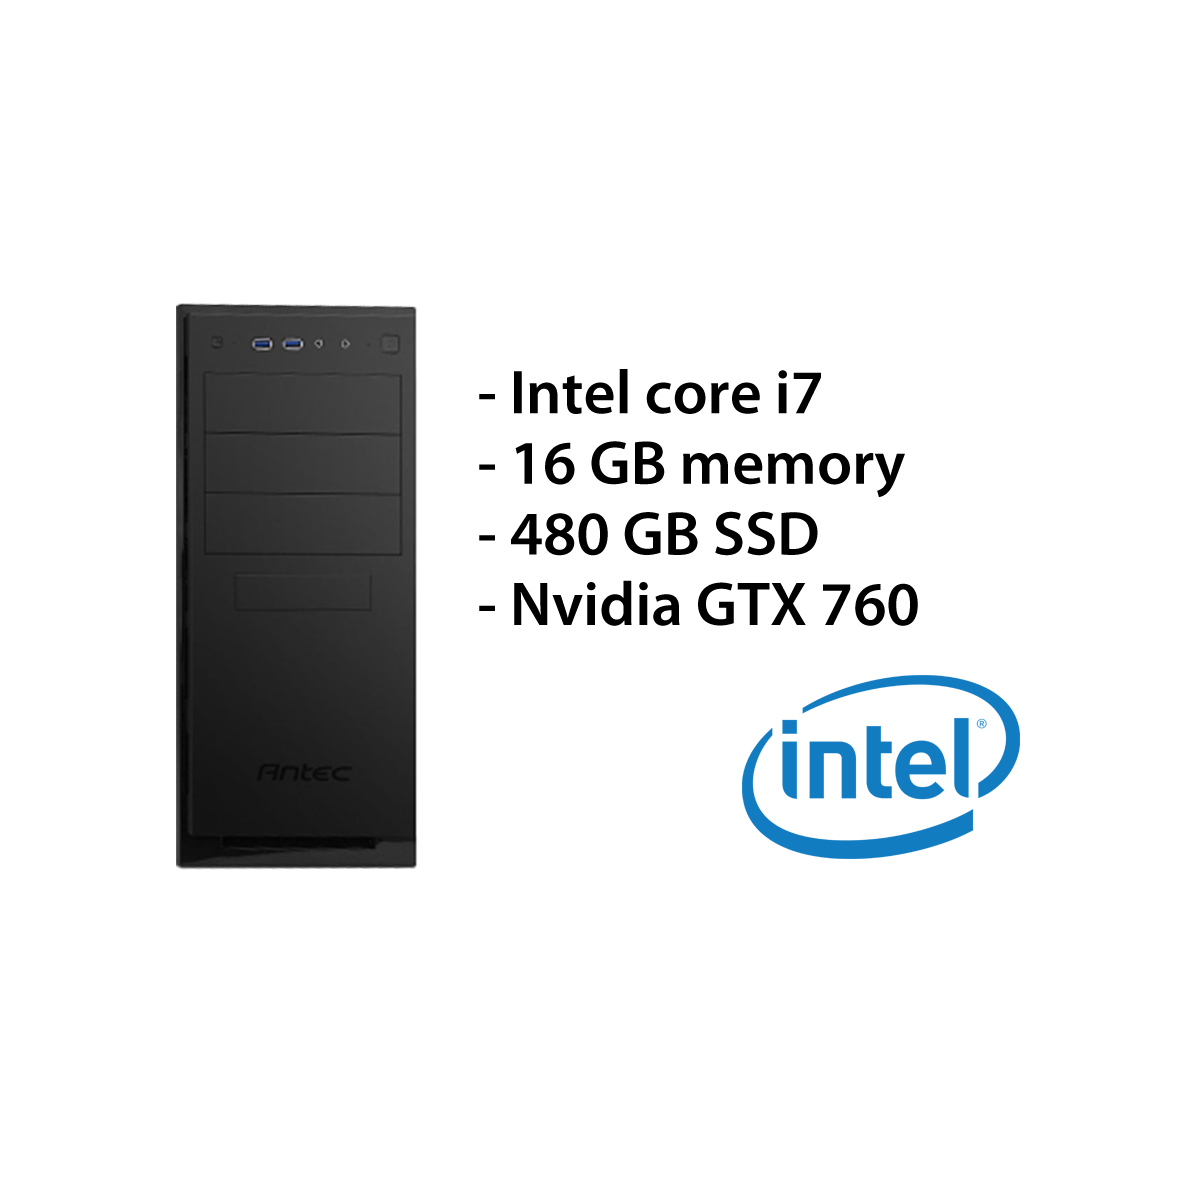 Multimedia PC – i7/16GB/480GB/GTX 760